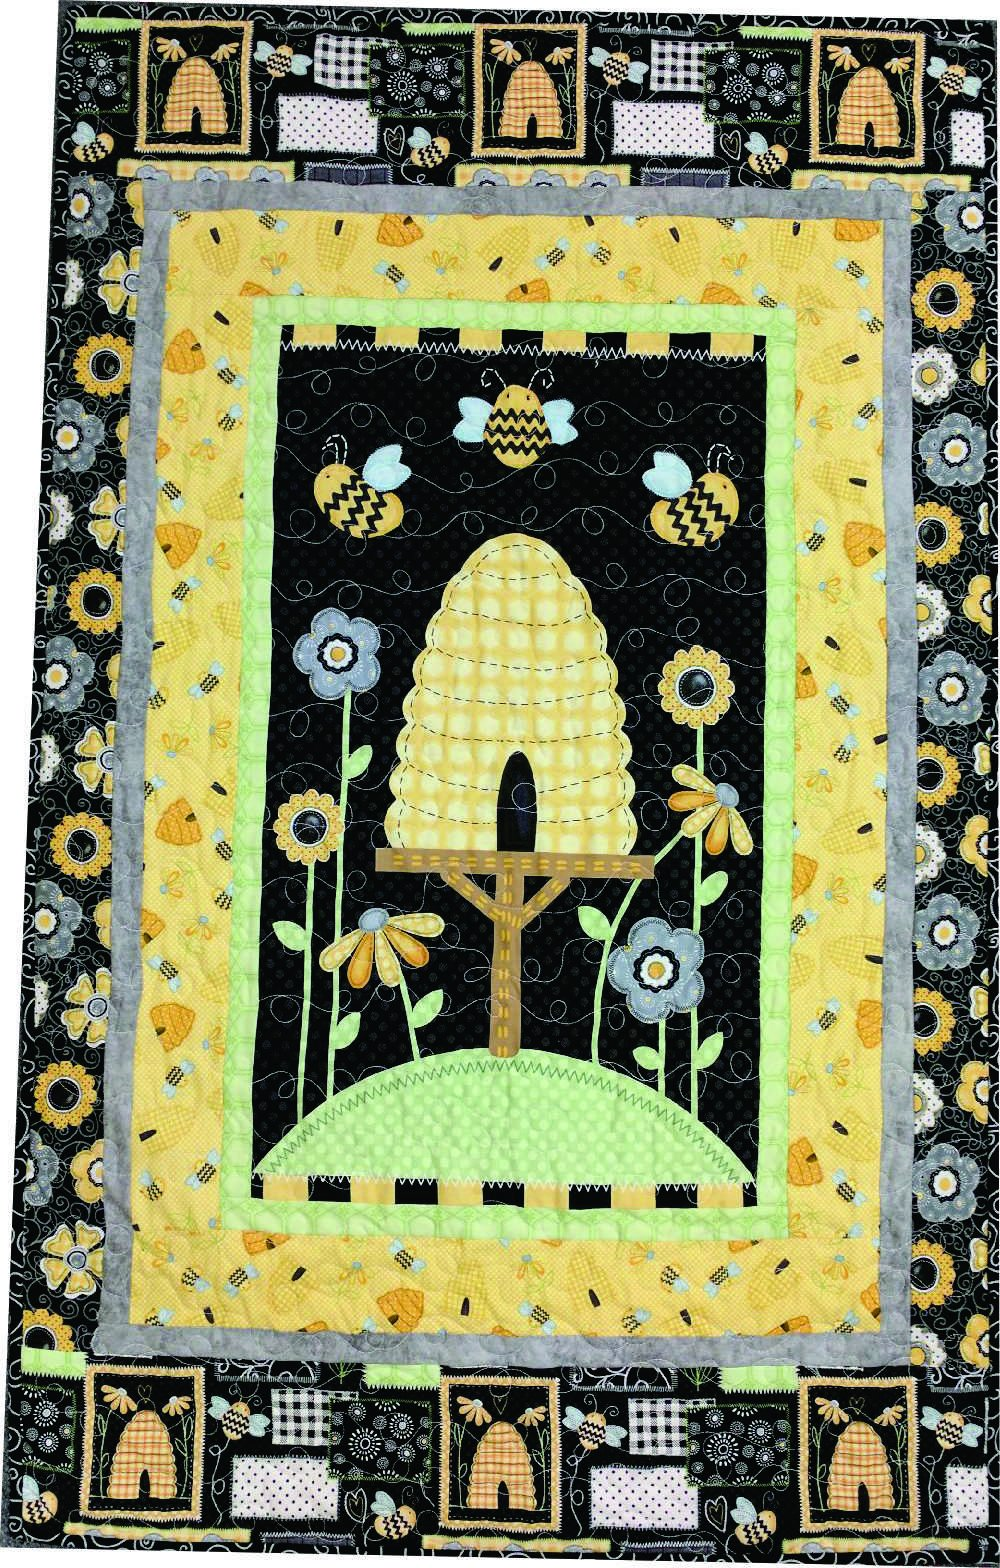 Sew Bee It Panel Kit / Wall Hanging / 42 x 56